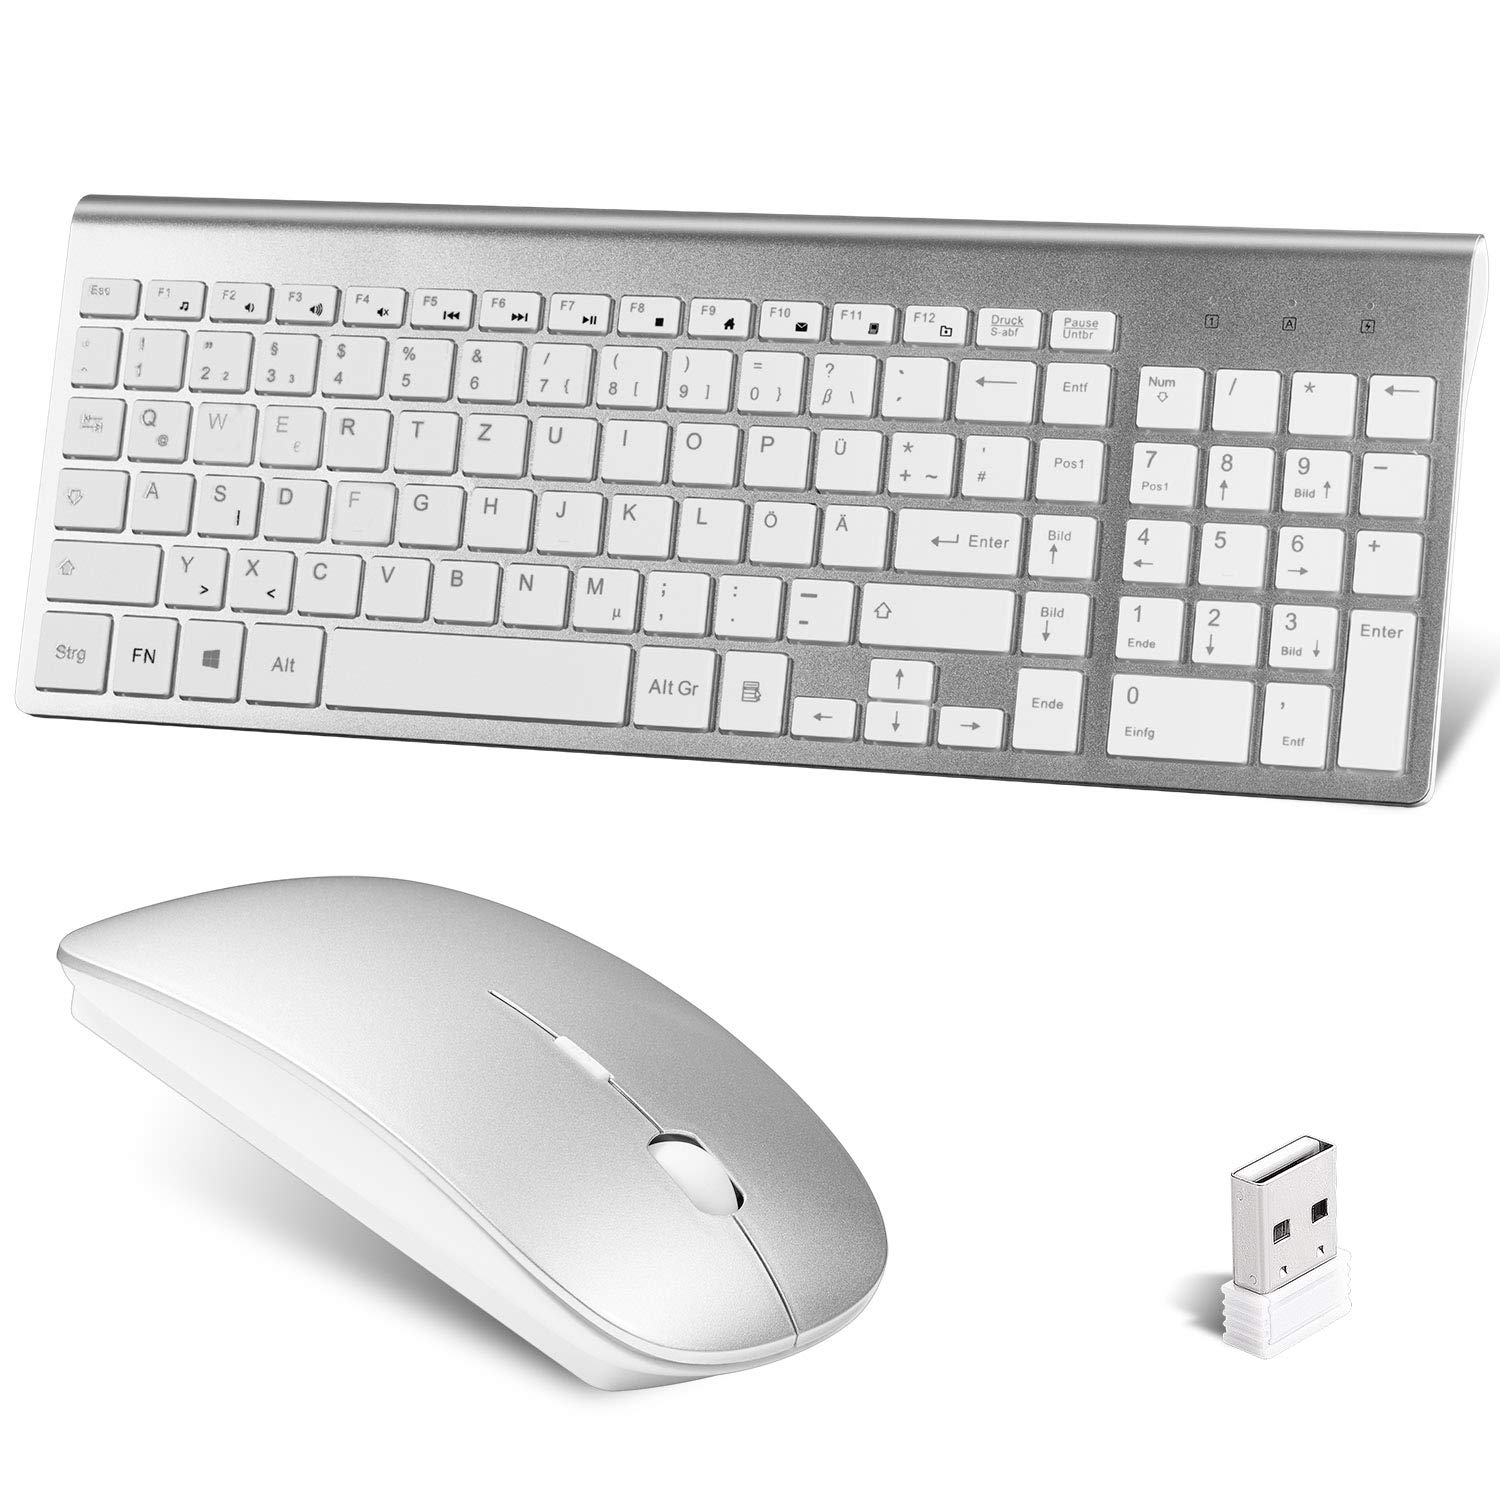 Juego de teclado inalámbrico, ratón ergonómico, silencioso, teclado fino QWERTZ 2,4 G, conexión inalámbrica mediante receptor USB unifying, para PC/portátil/Smart TV (disposición alemana): Amazon.es: Oficina y papelería